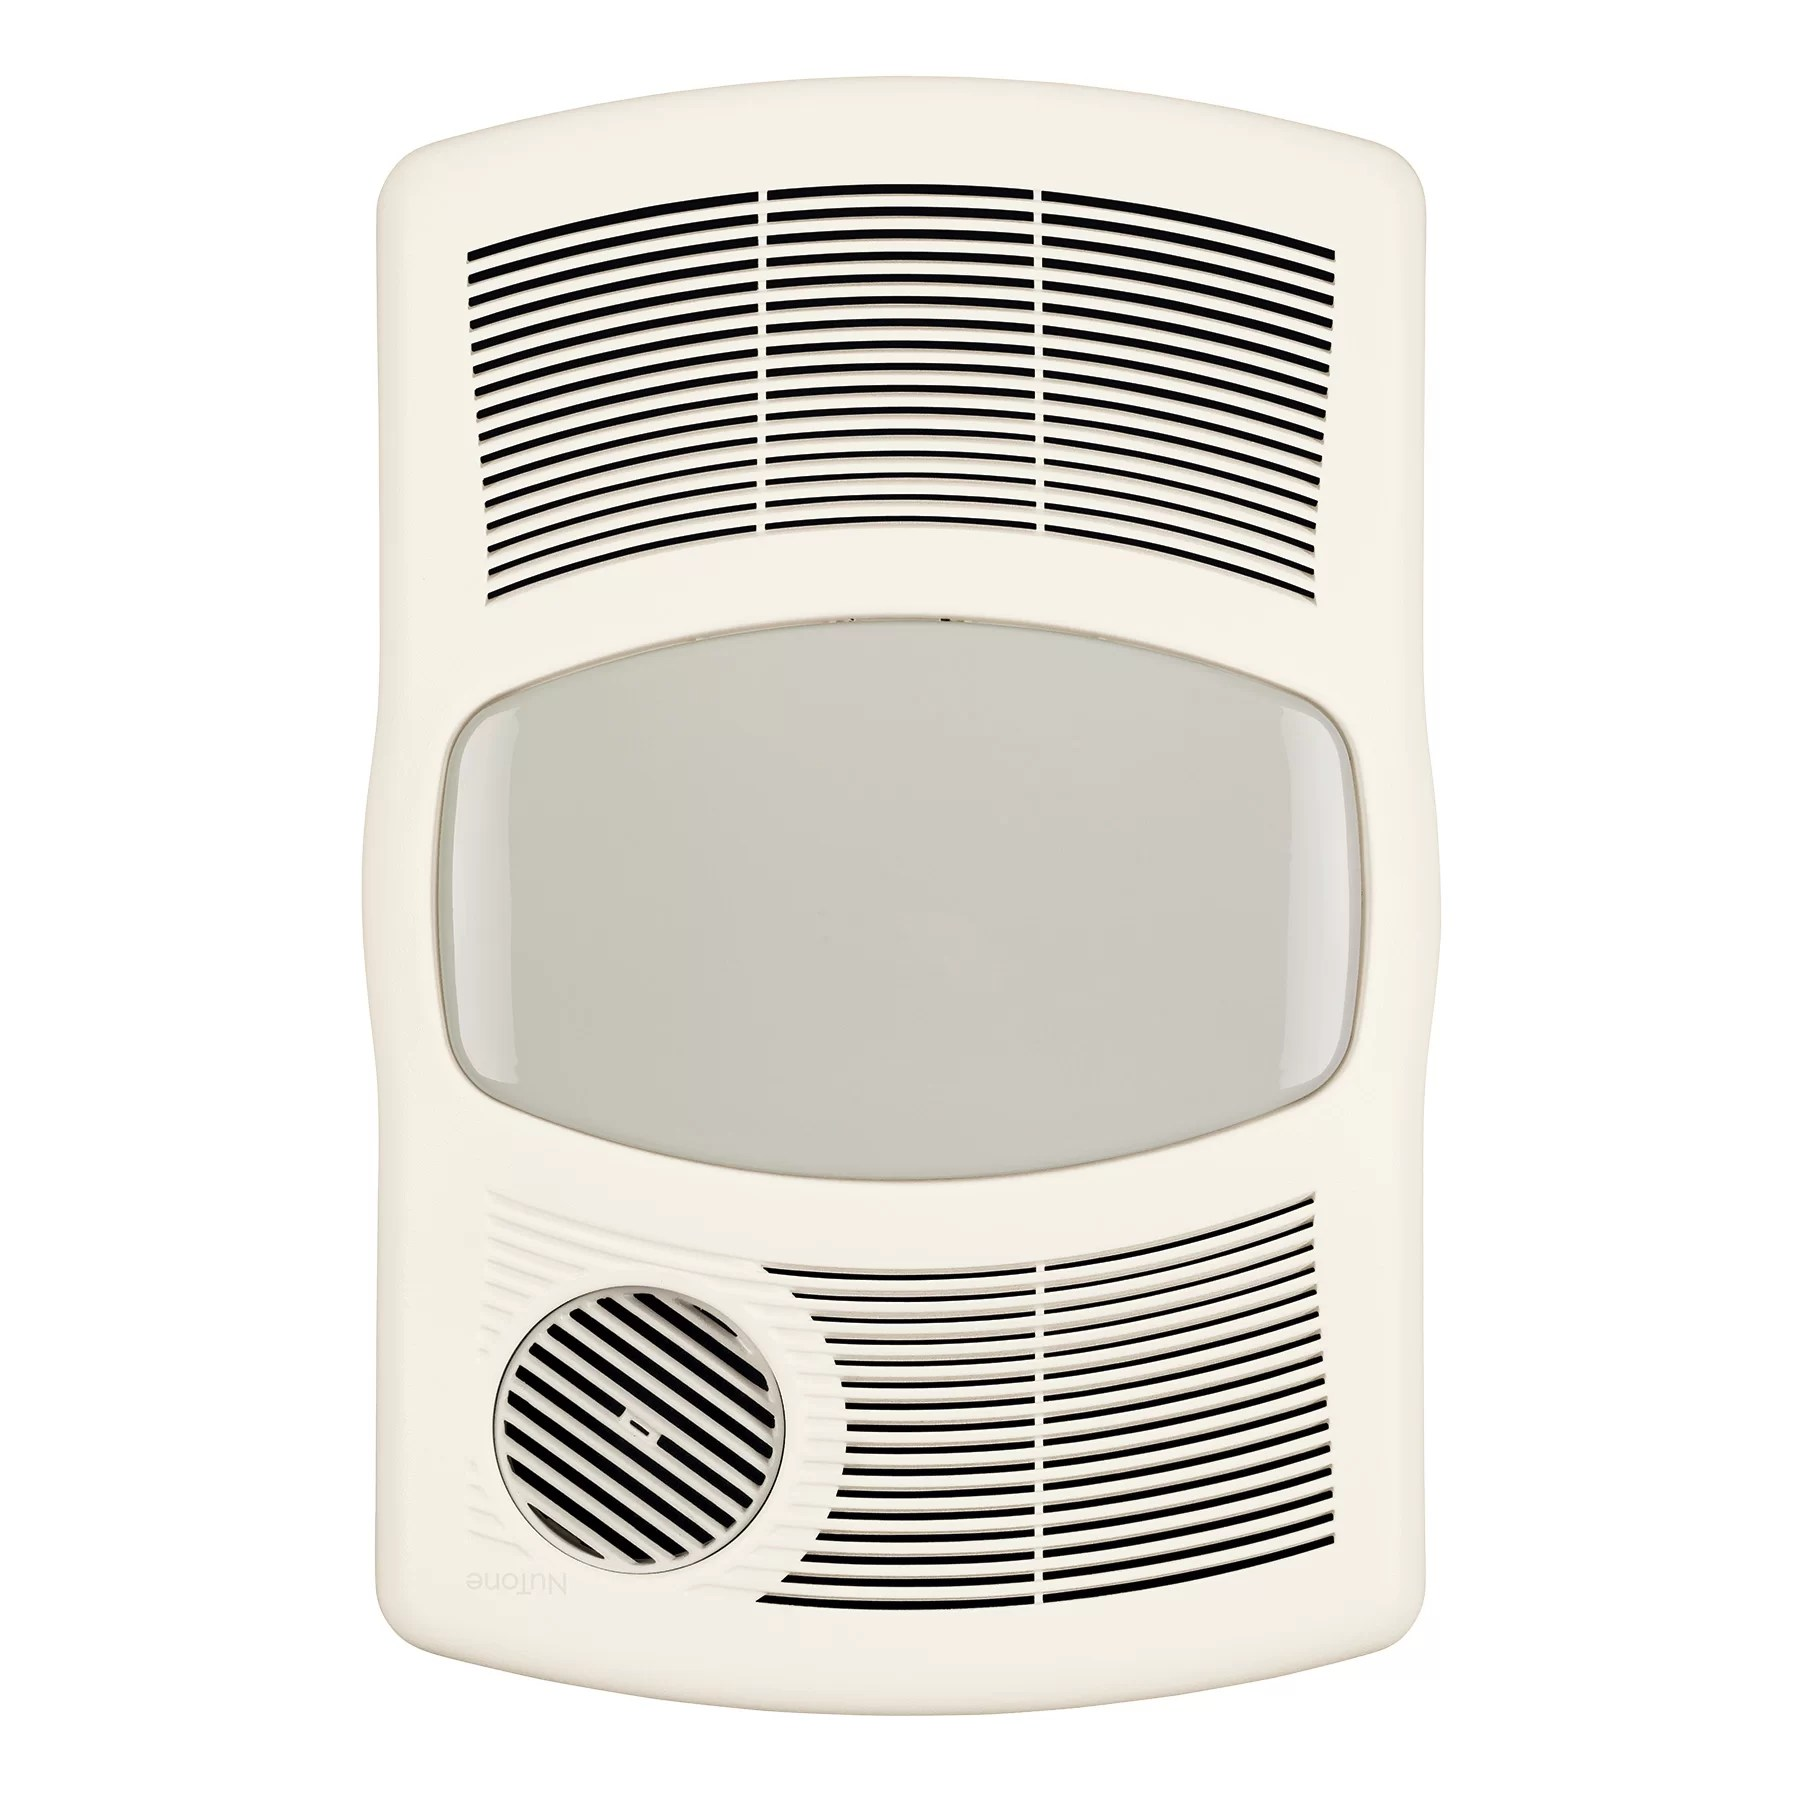 Broan 100 CFM Exhaust Bathroom Fan with Heater  Reviews  Wayfair